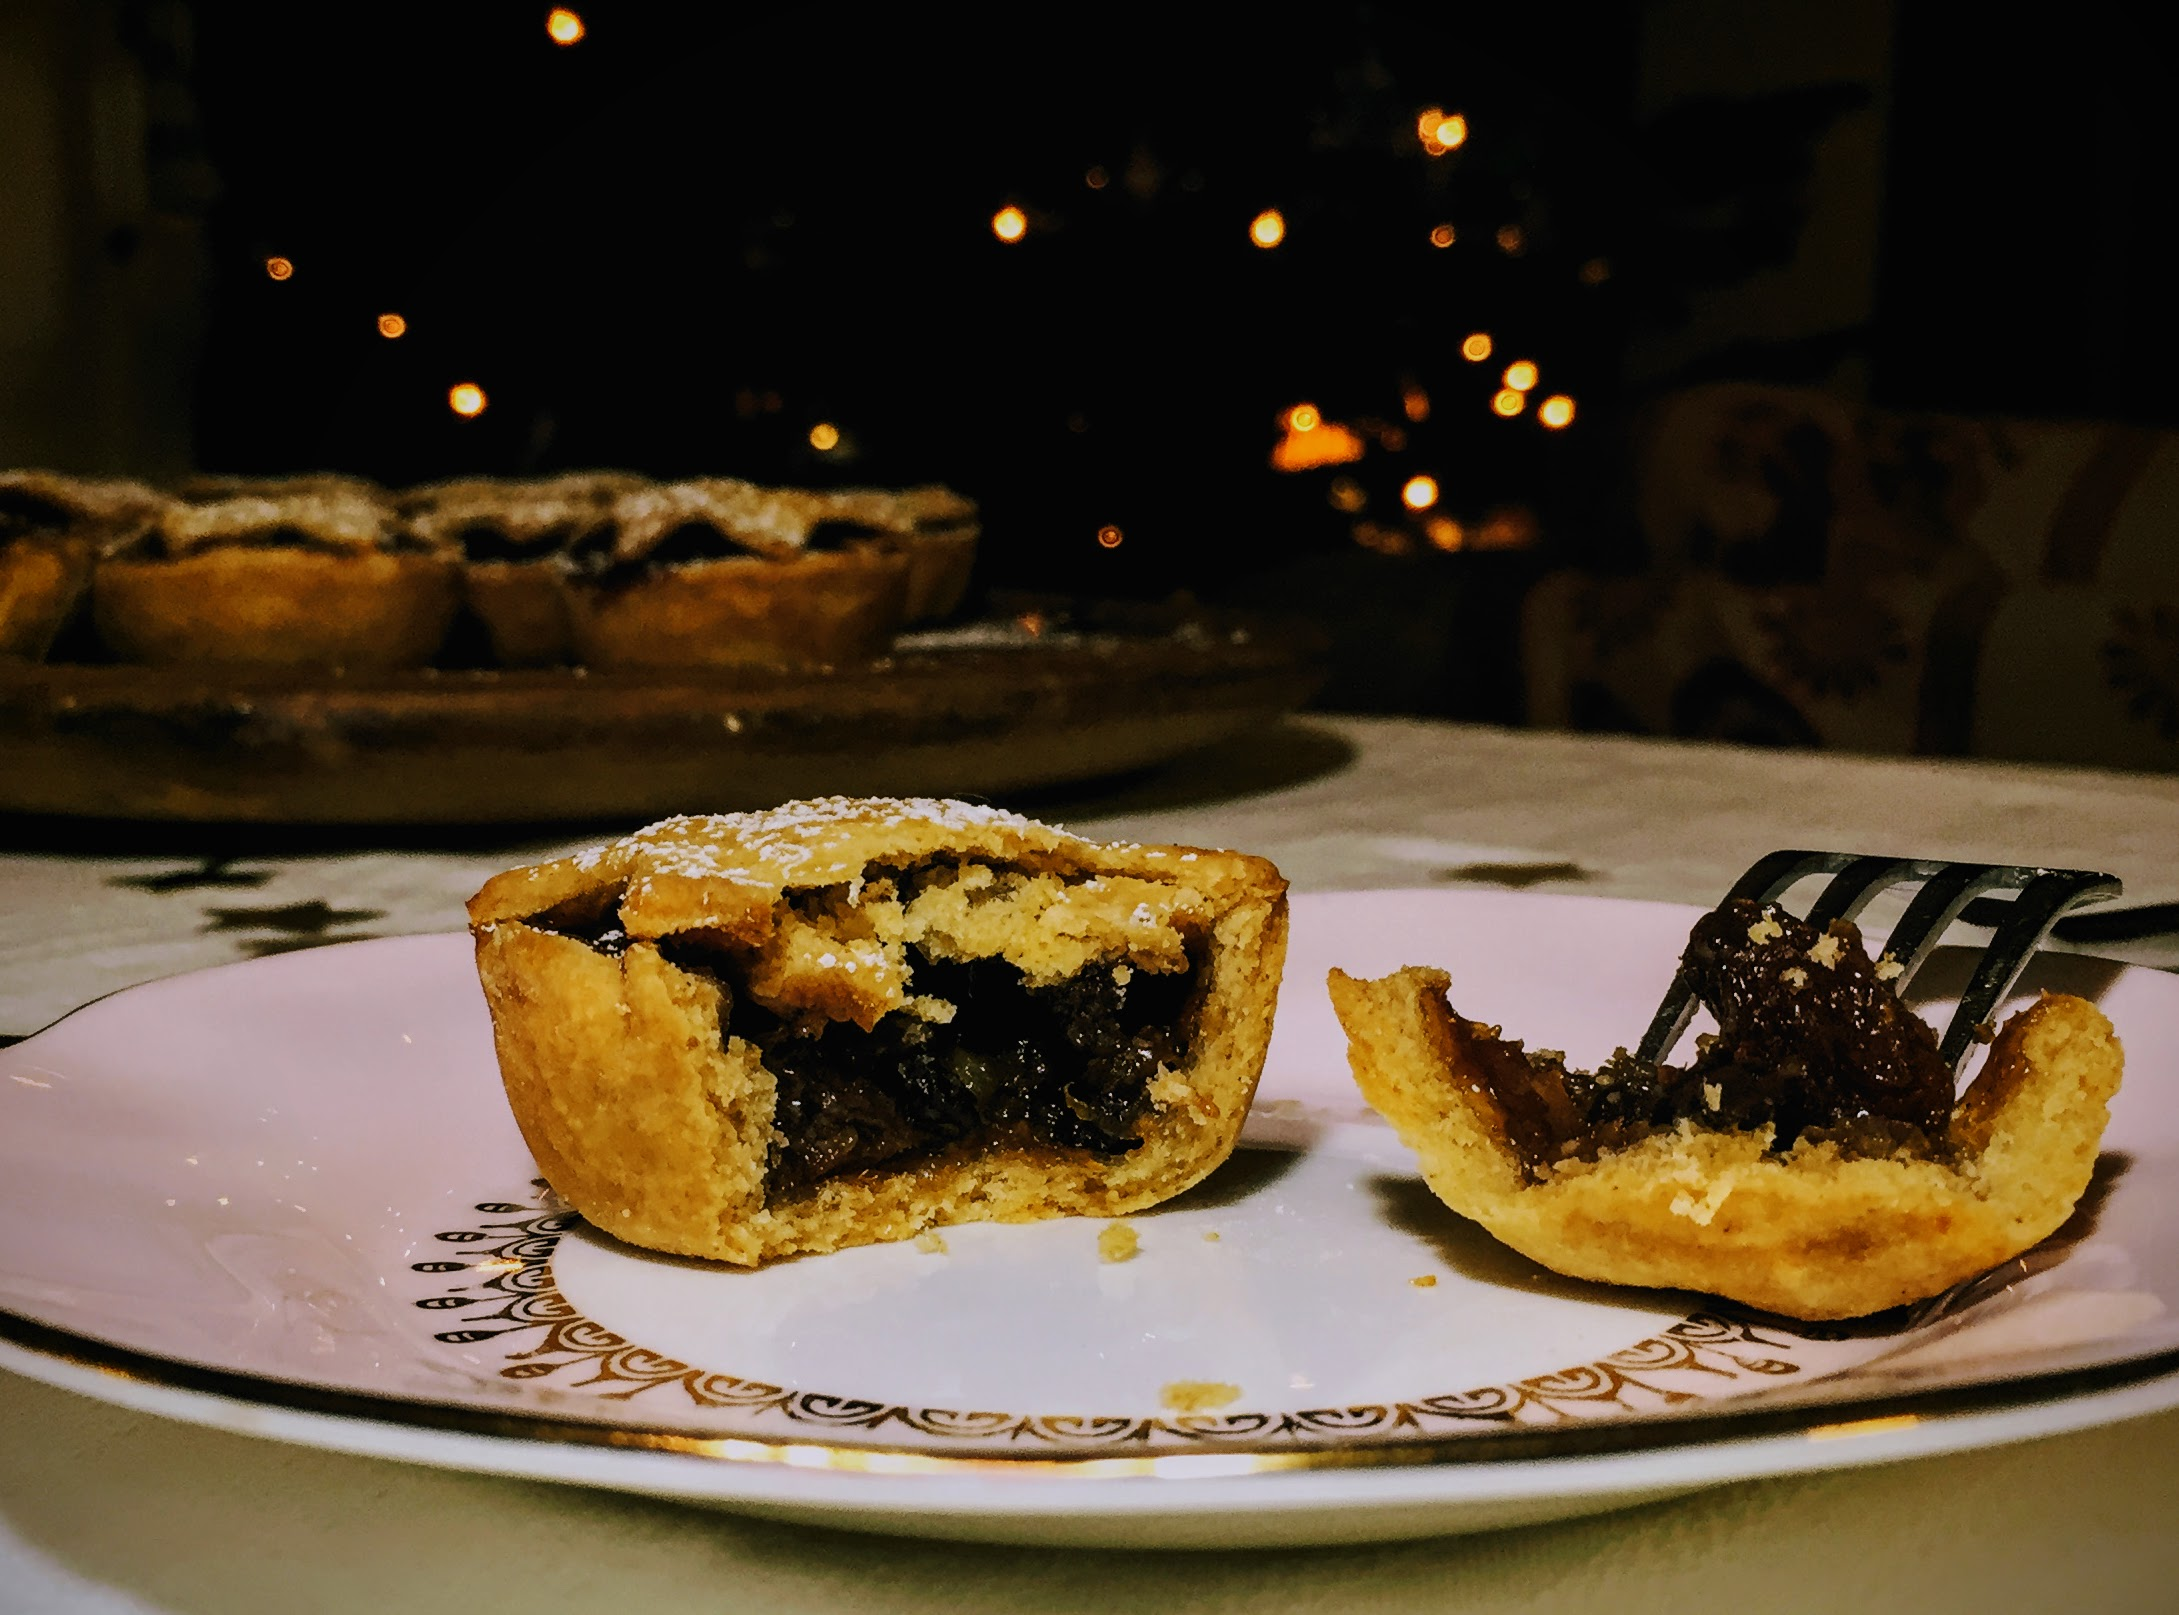 A mice pie, cut open to reveal the dark and glistening mincemeat filling. The pastry is golden, flakey and crumbling. The rest of the mince pies are on a board behind, and Christmas lights sparkle in the background.